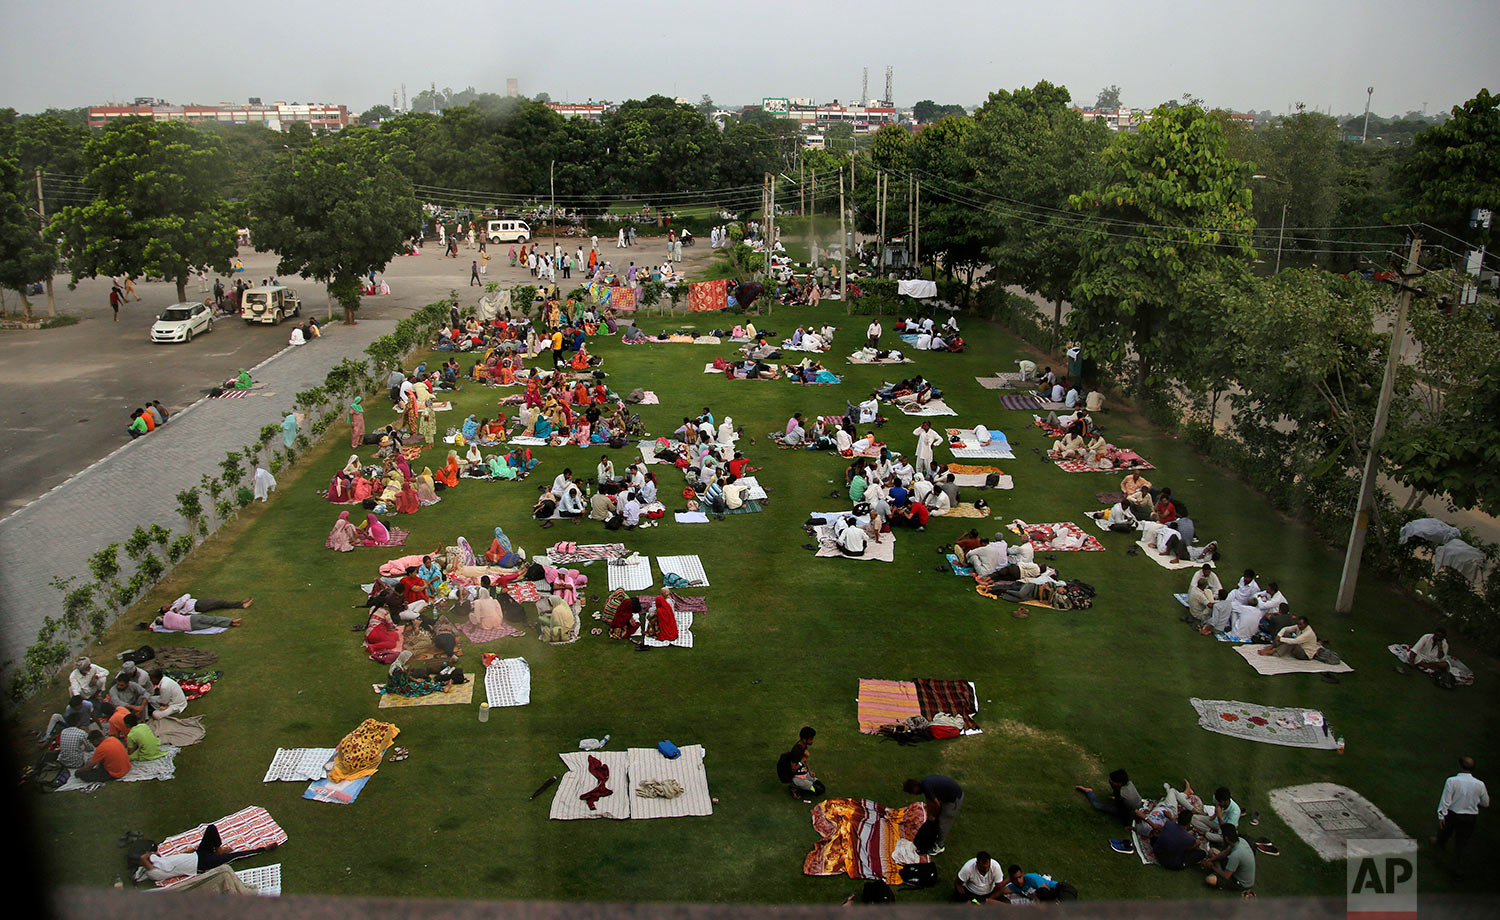 Supporters of the Dera Sacha Sauda religious sect squat in a public park near an Indian court in Panchkula, India, Friday, Aug. 25, 2017. (AP Photo/Altaf Qadri)